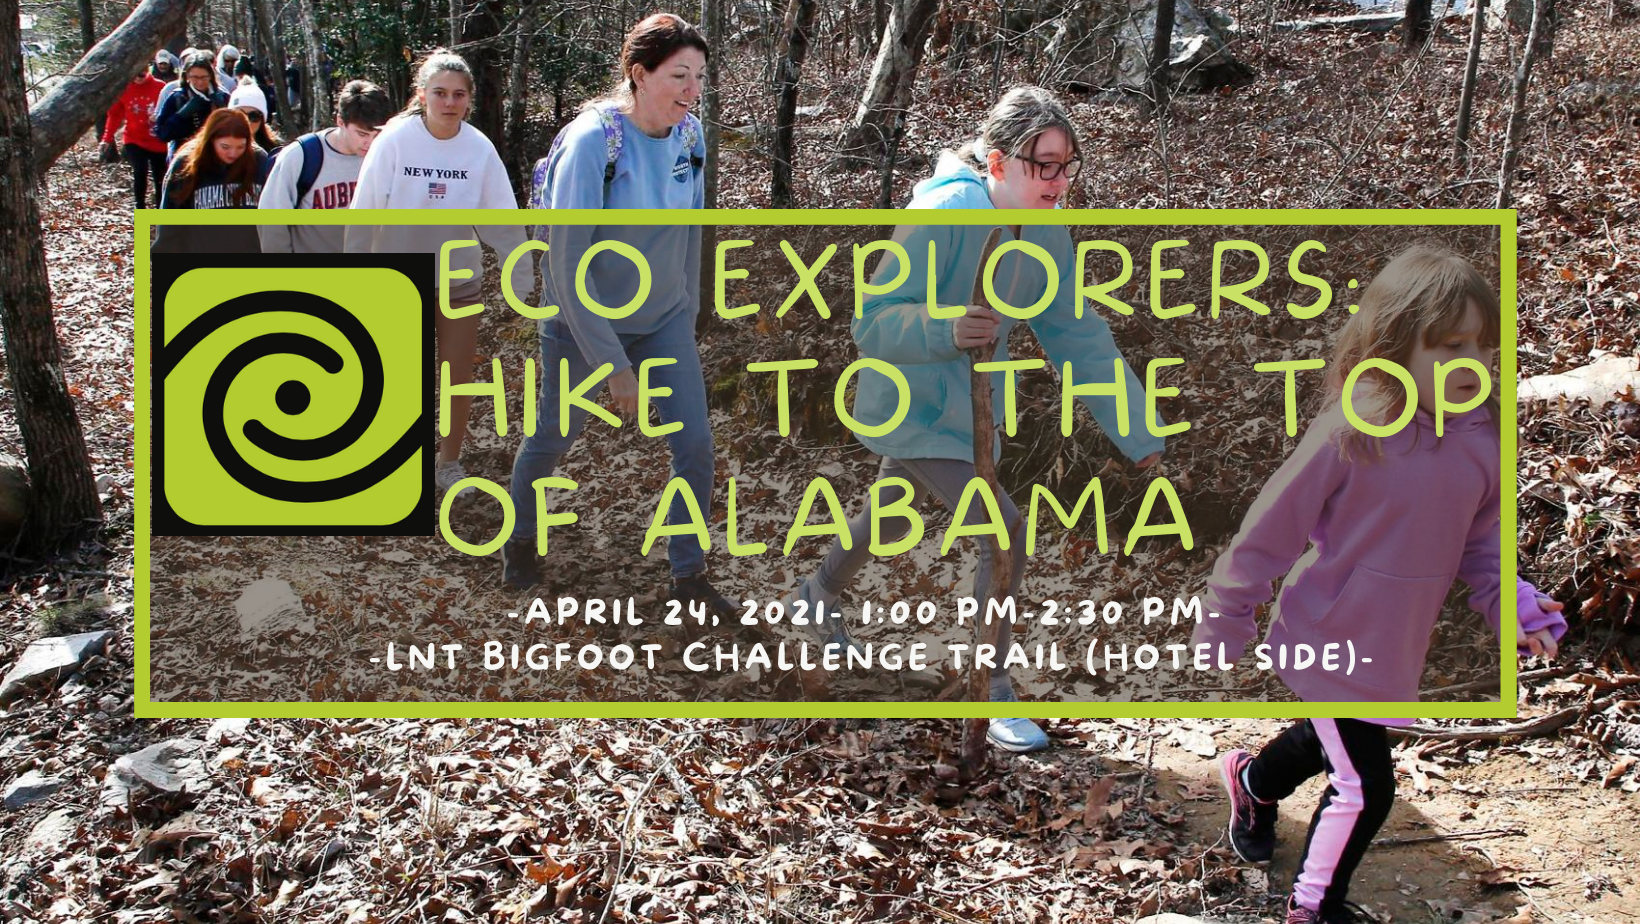 CSP Eco Explorers: Leave No Trace Hike to the Top of Alabama